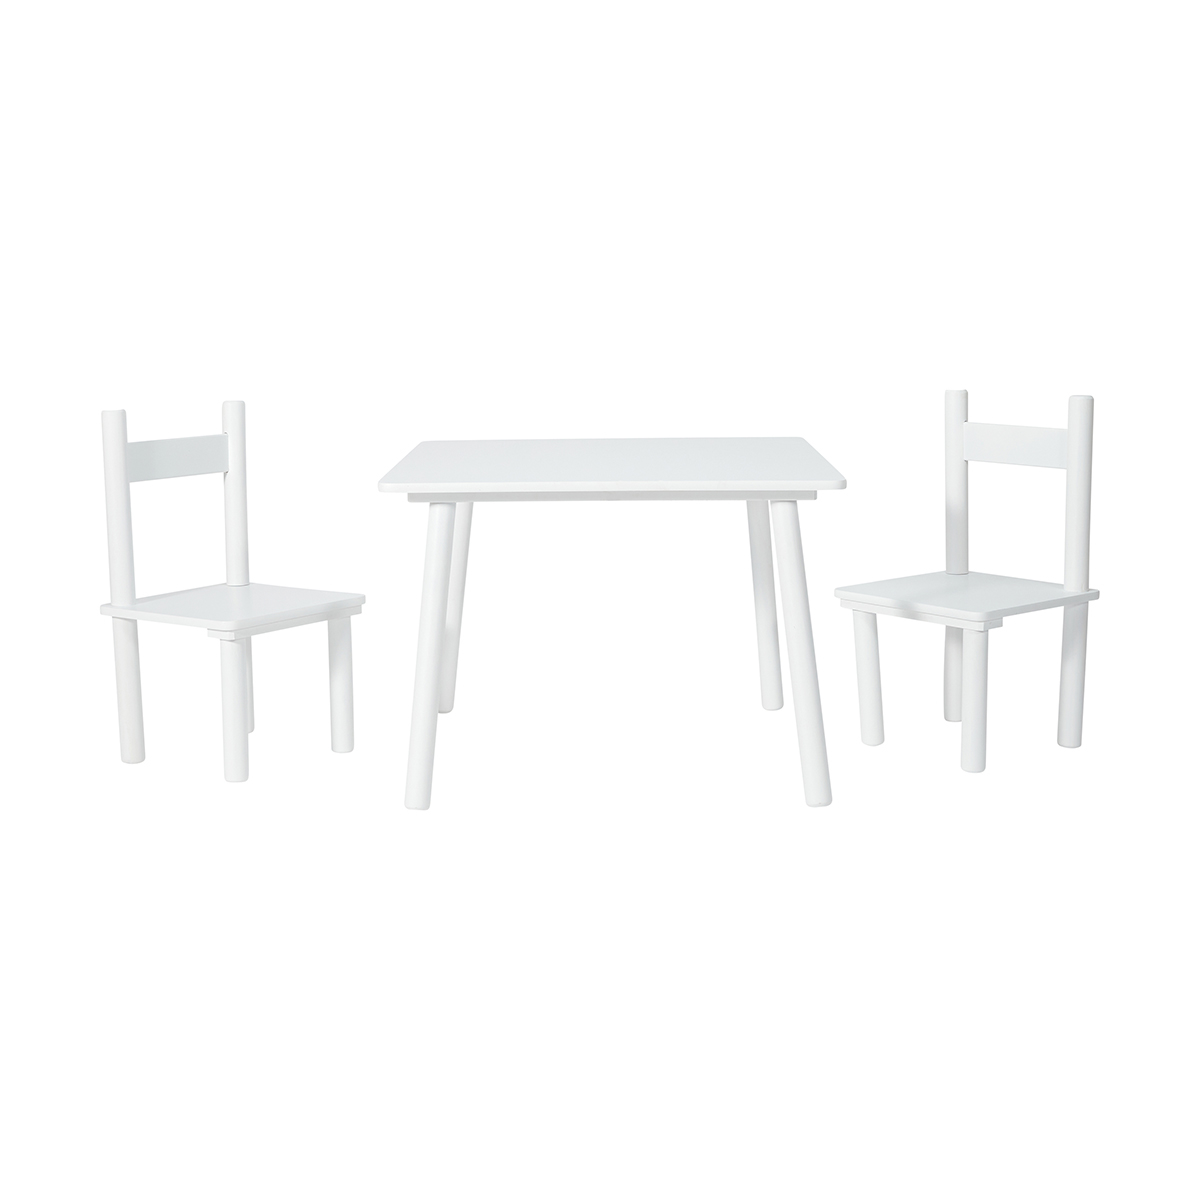 Timber Outdoor Furniture Kmart